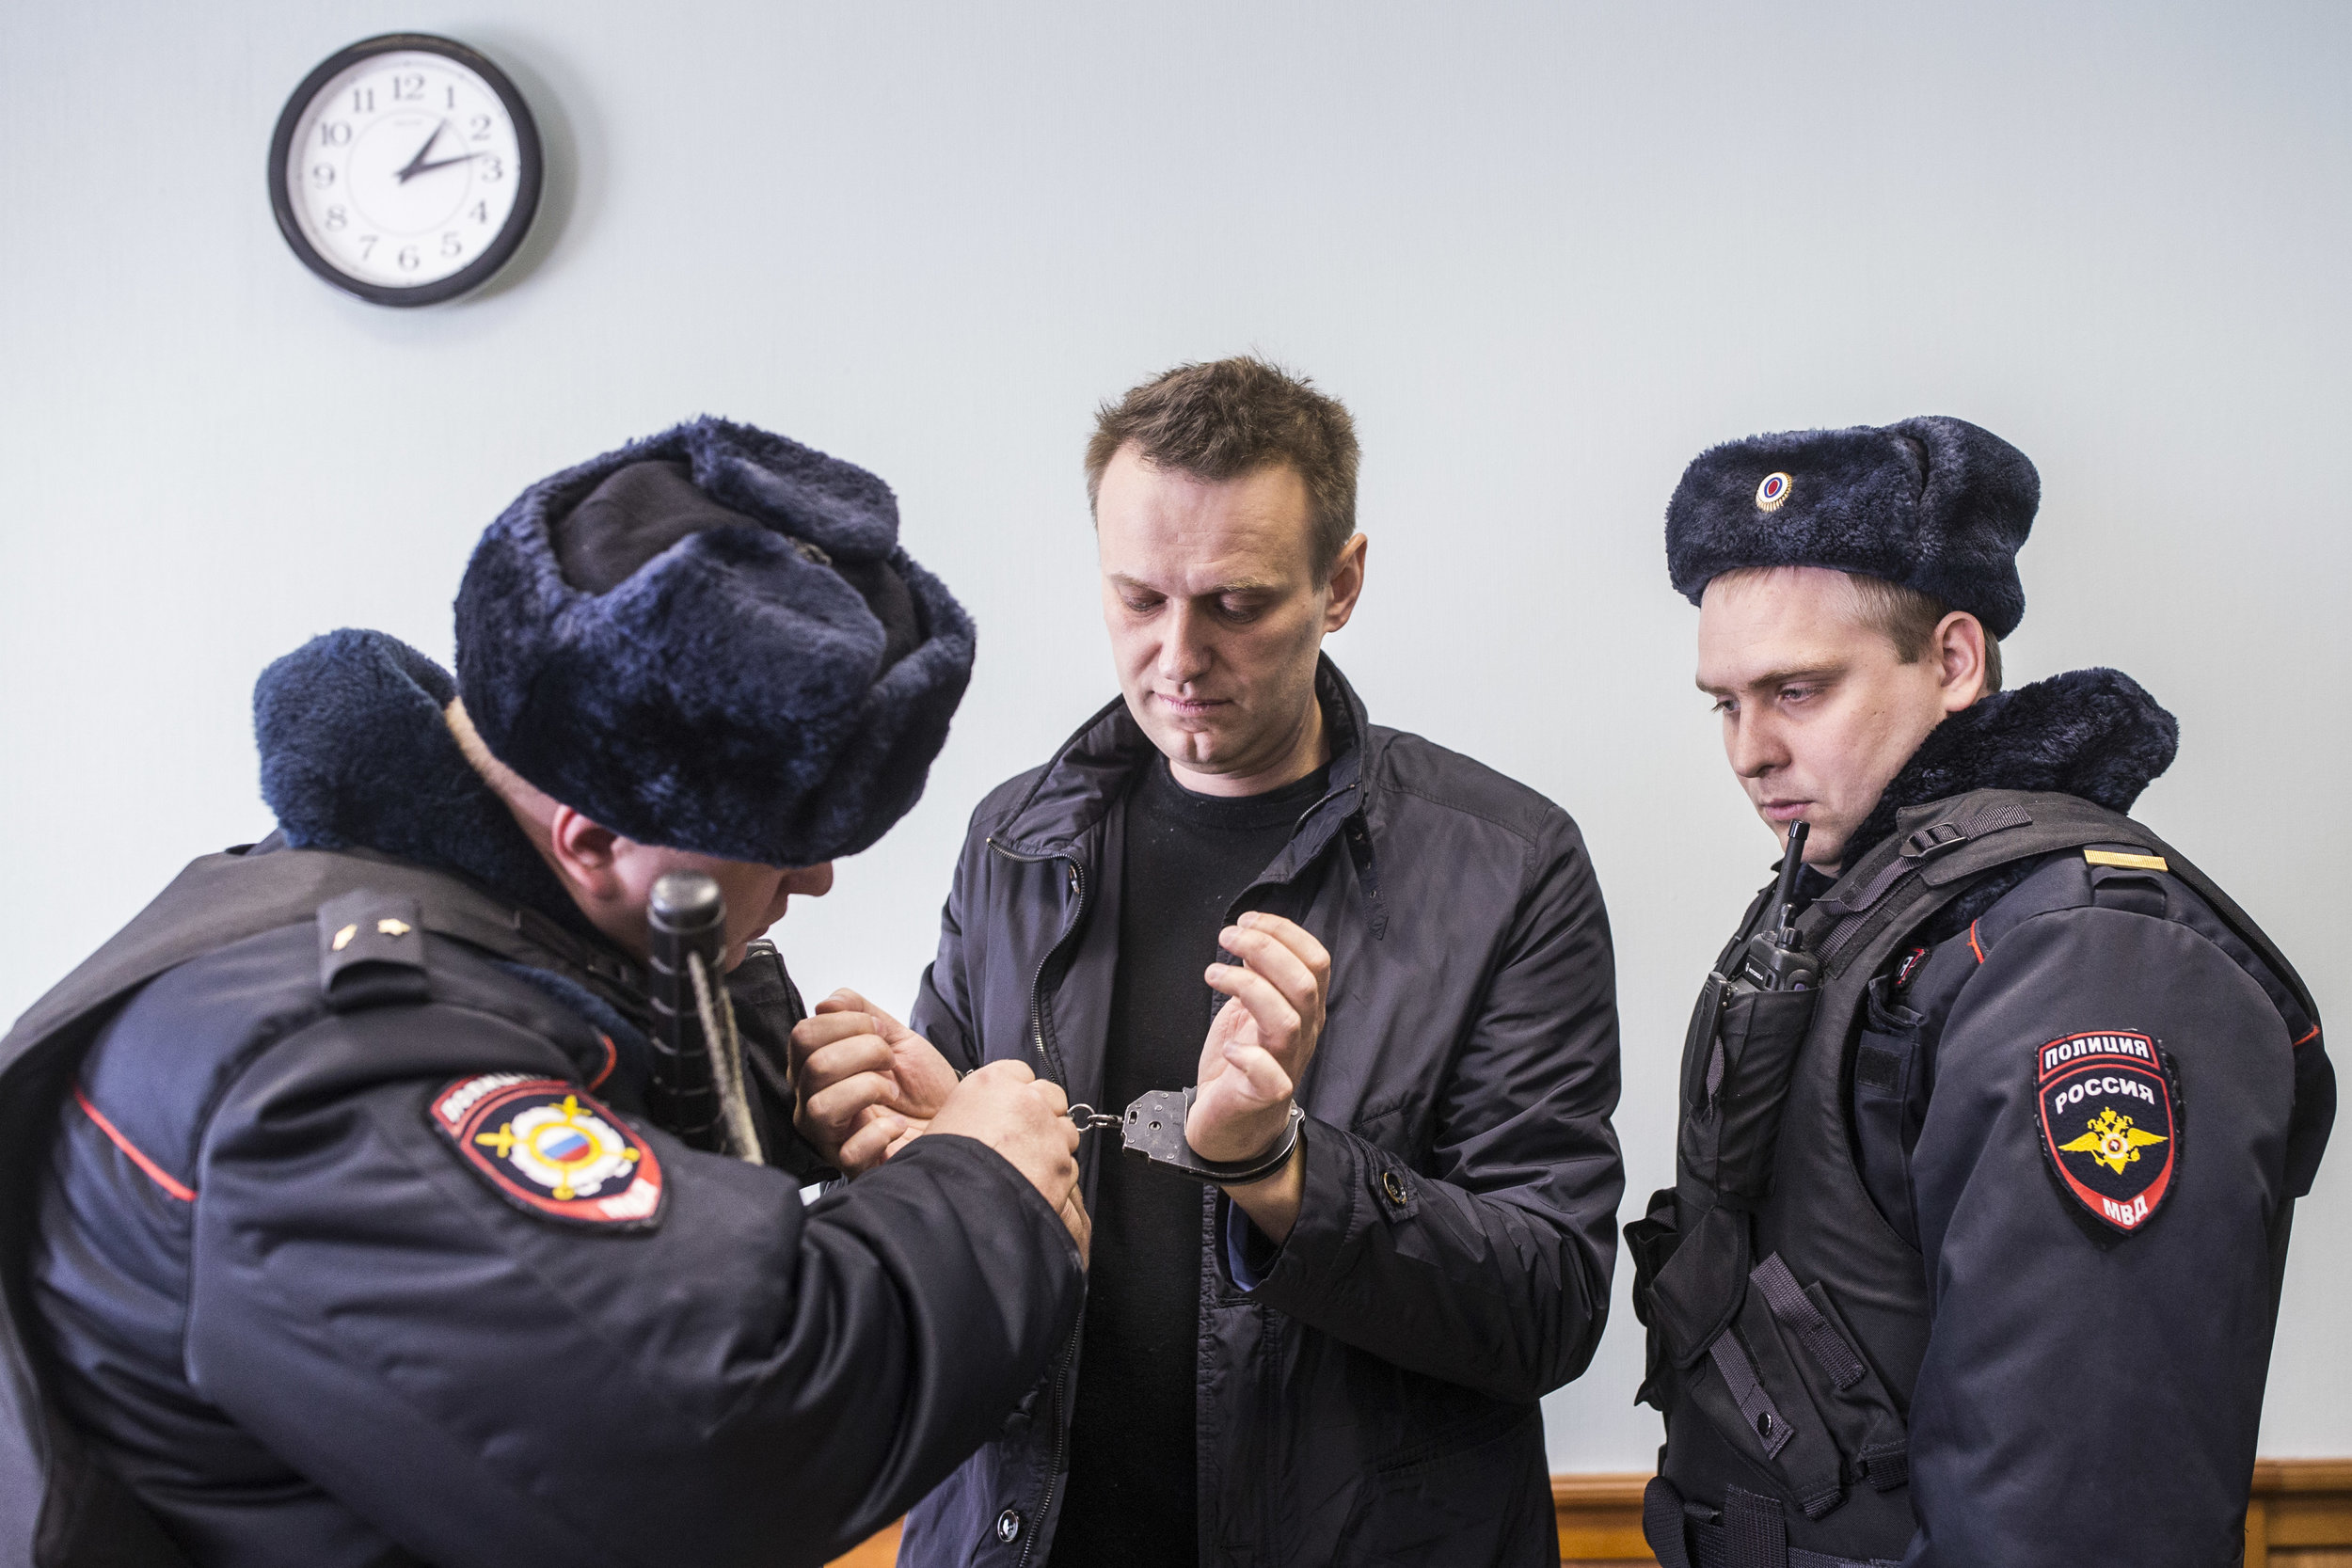 Police officers dismantle handcuffs from Alexey Navalny's hands prior to an appeal hearing after his arrest at a rally in Moscow, Russia